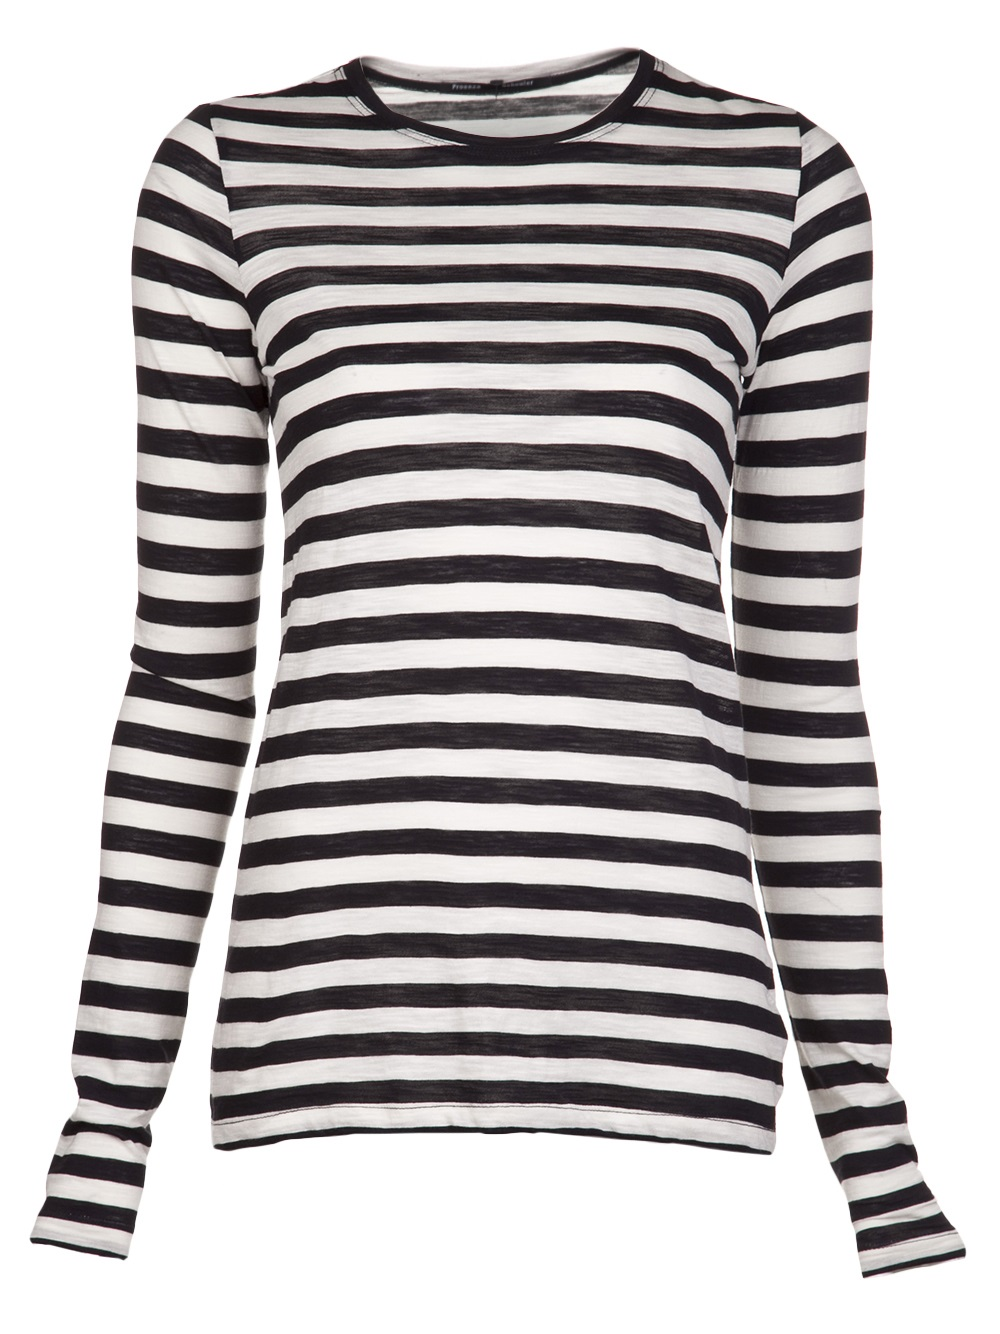 Proenza schouler striped tshirt in black lyst